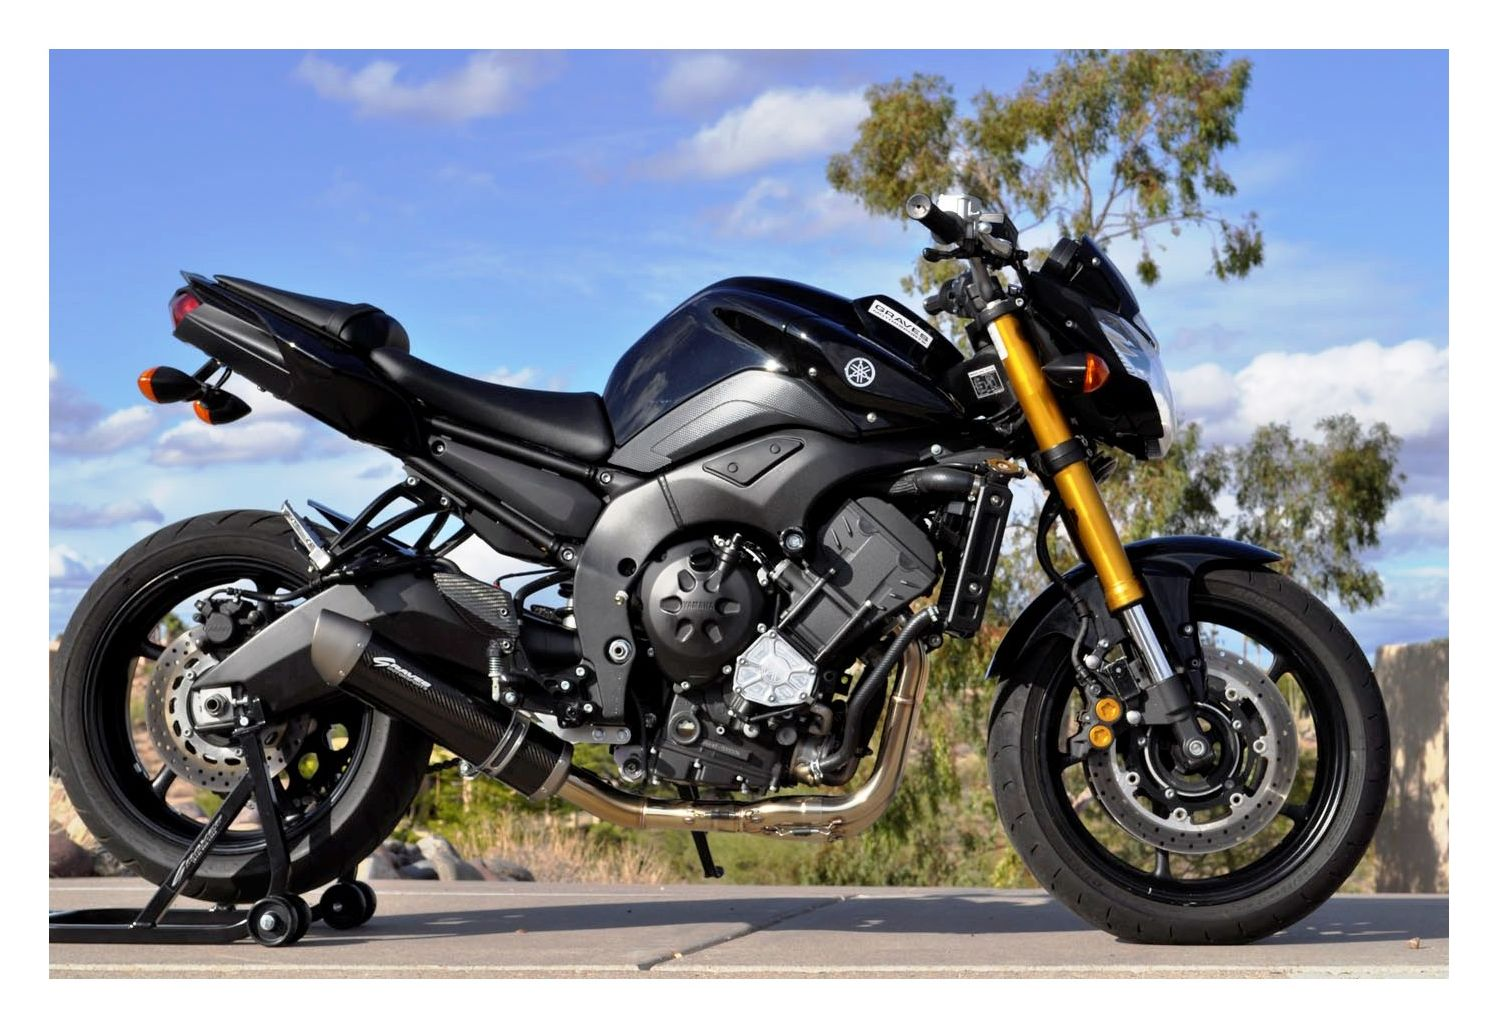 Graves Oval Exhaust System Yamaha Fz8 2011-2012